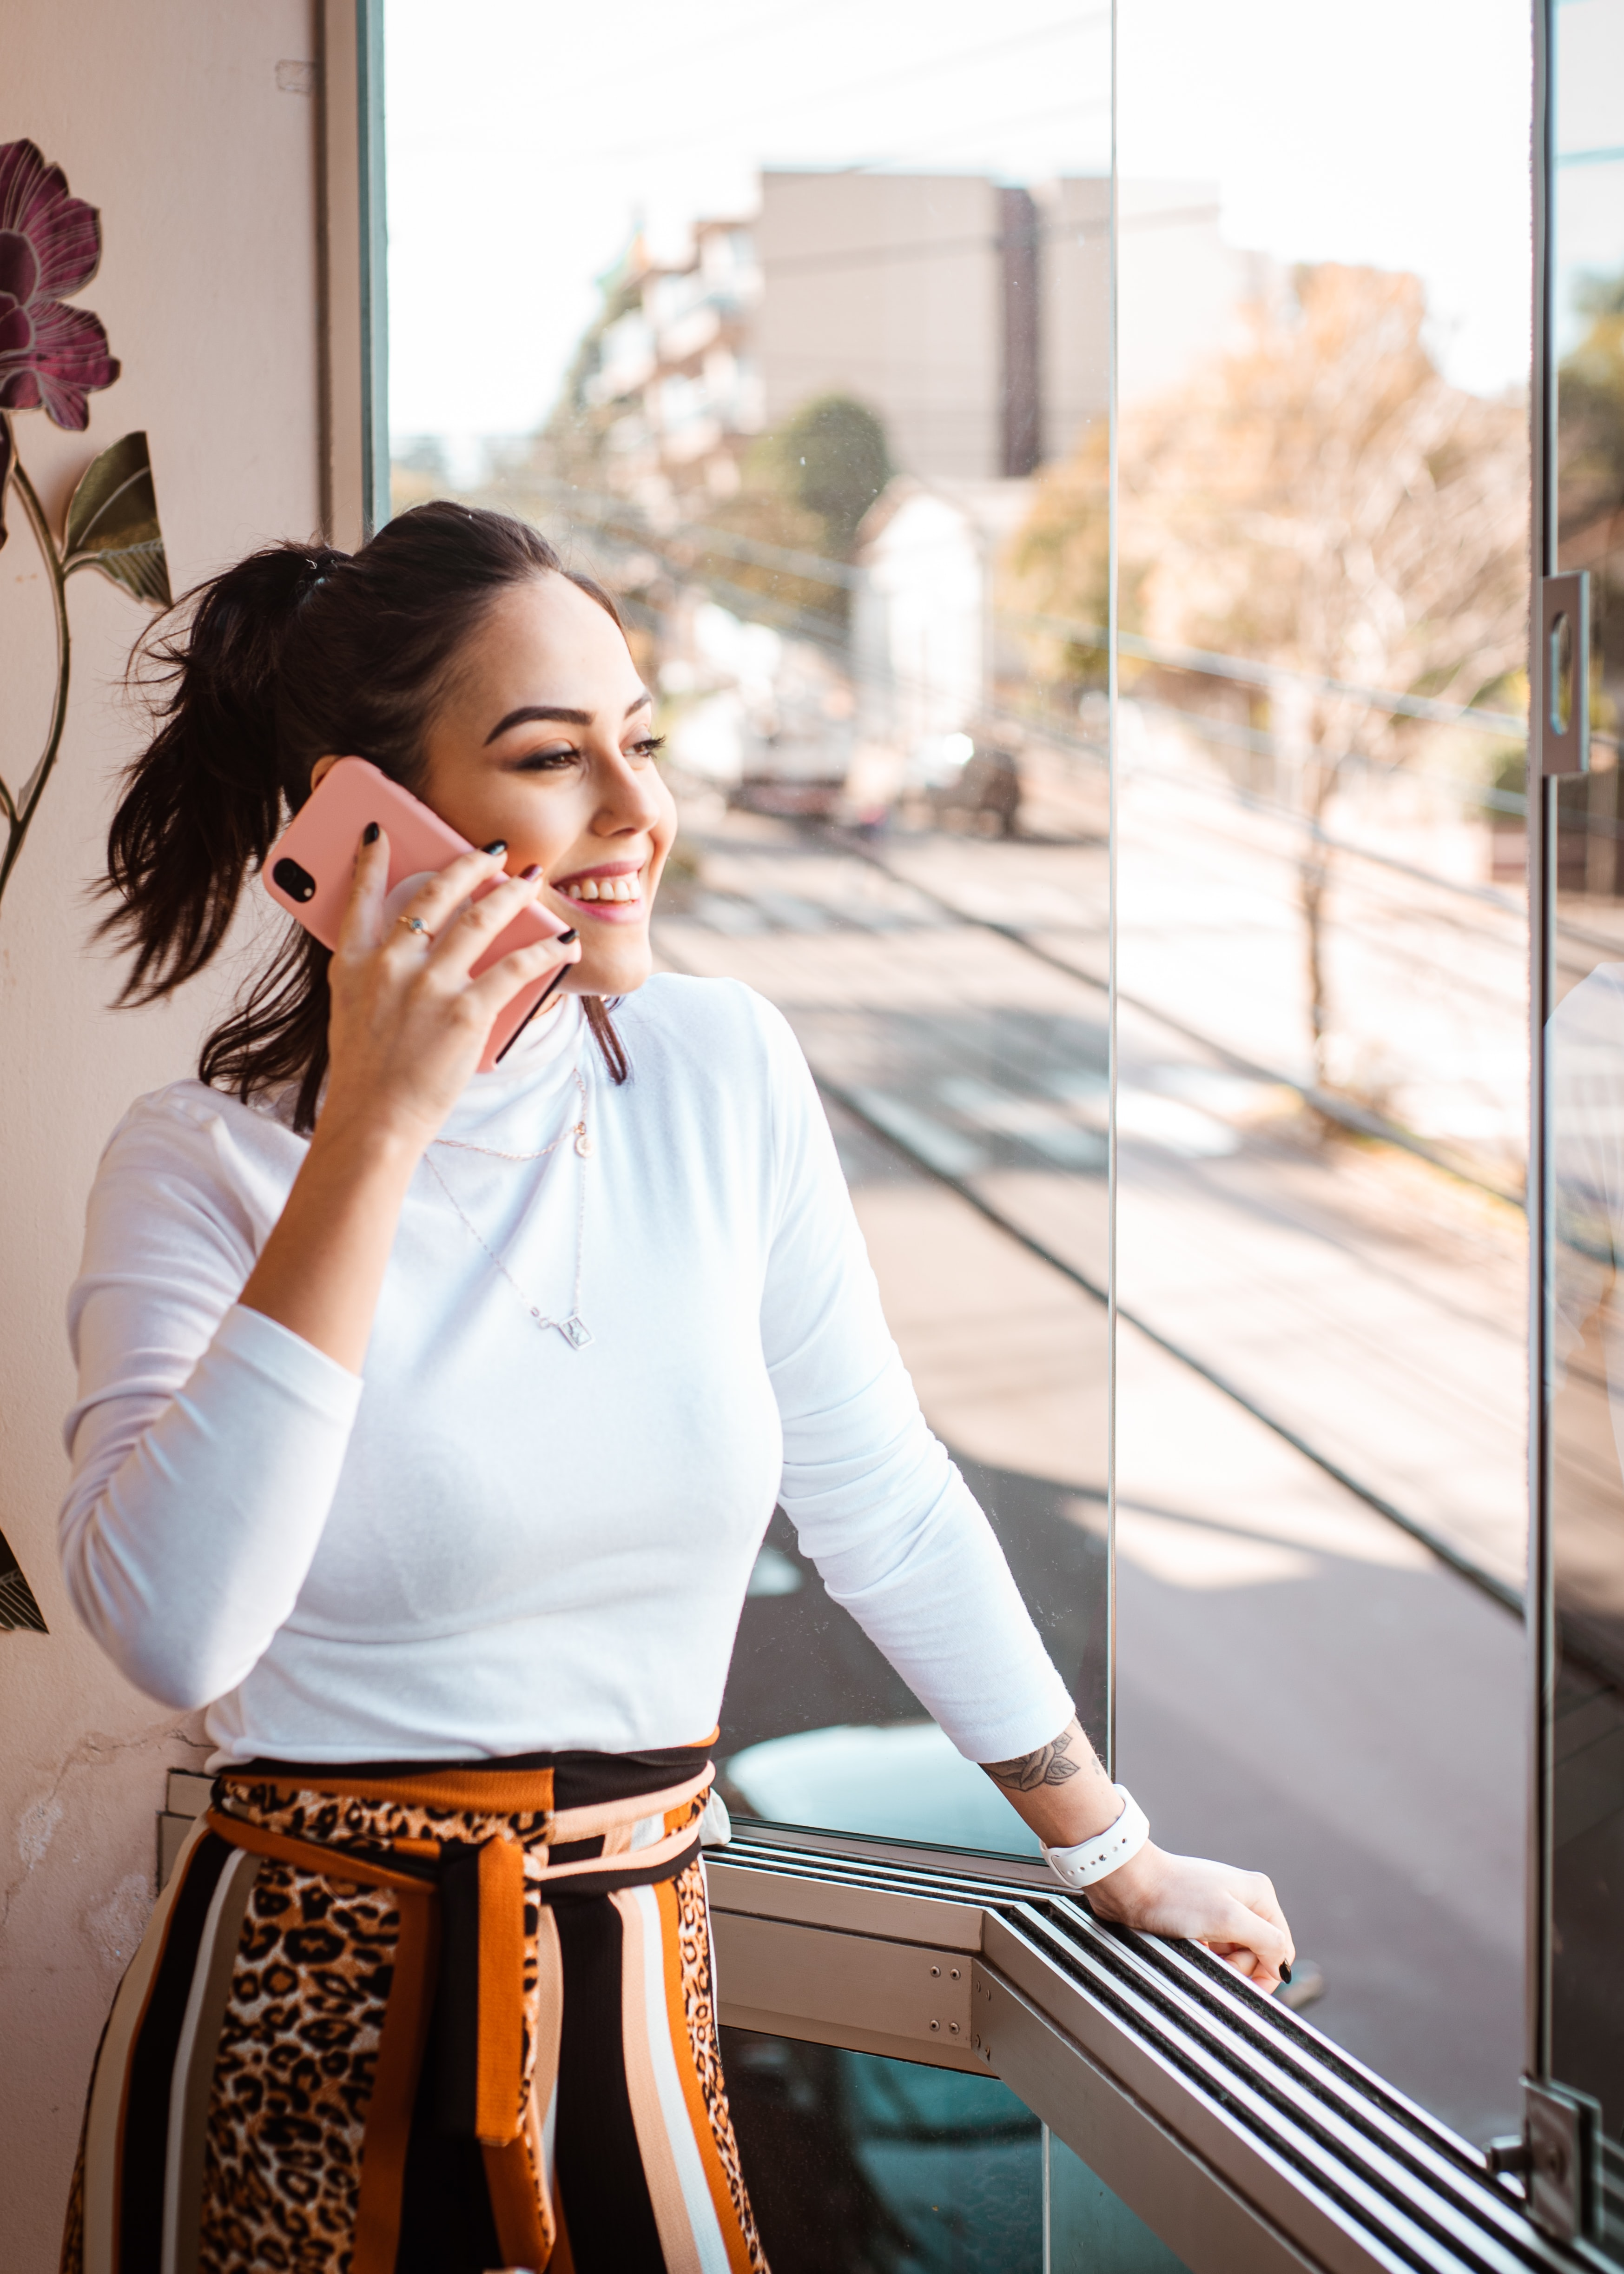 A young lady is on the phone